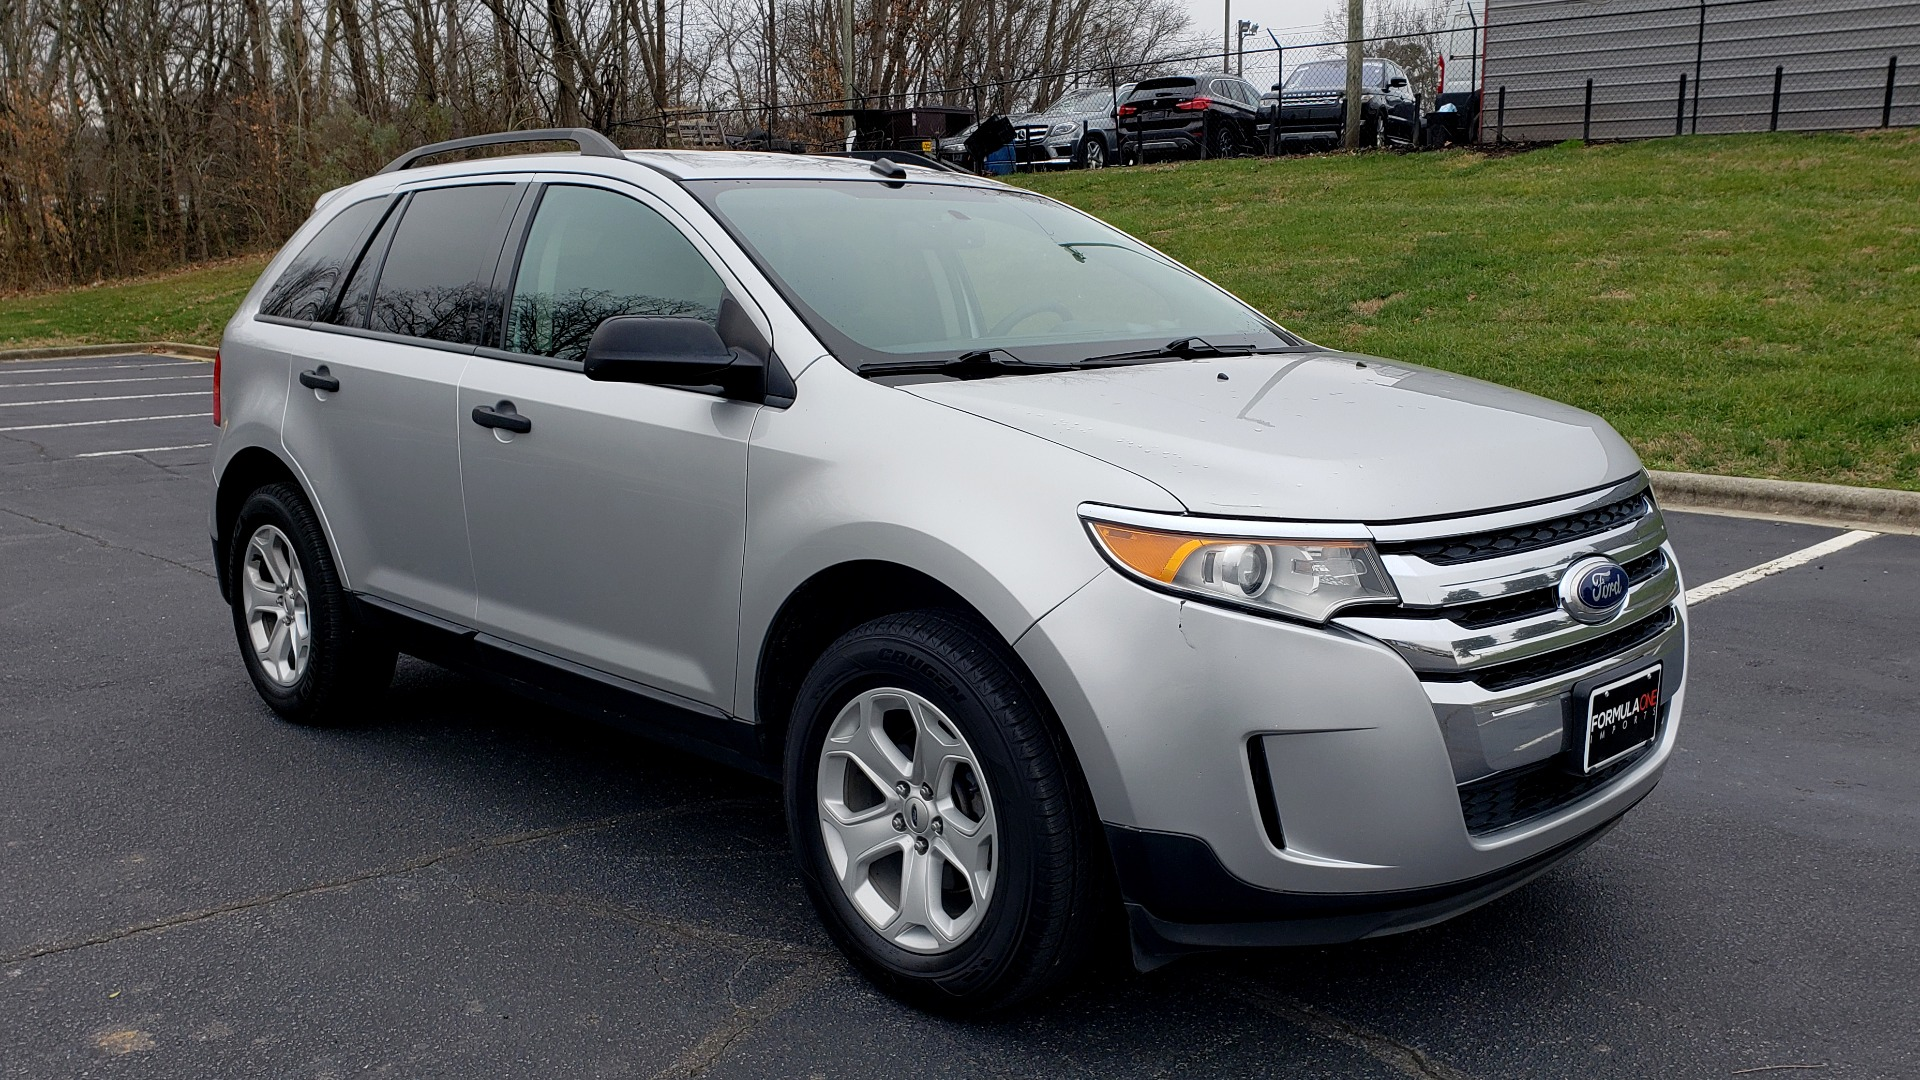 Used 2013 Ford EDGE SE / AWD / 18 IN WHEELS / SYNC / 3.5L V6 / AUTO for sale Sold at Formula Imports in Charlotte NC 28227 4